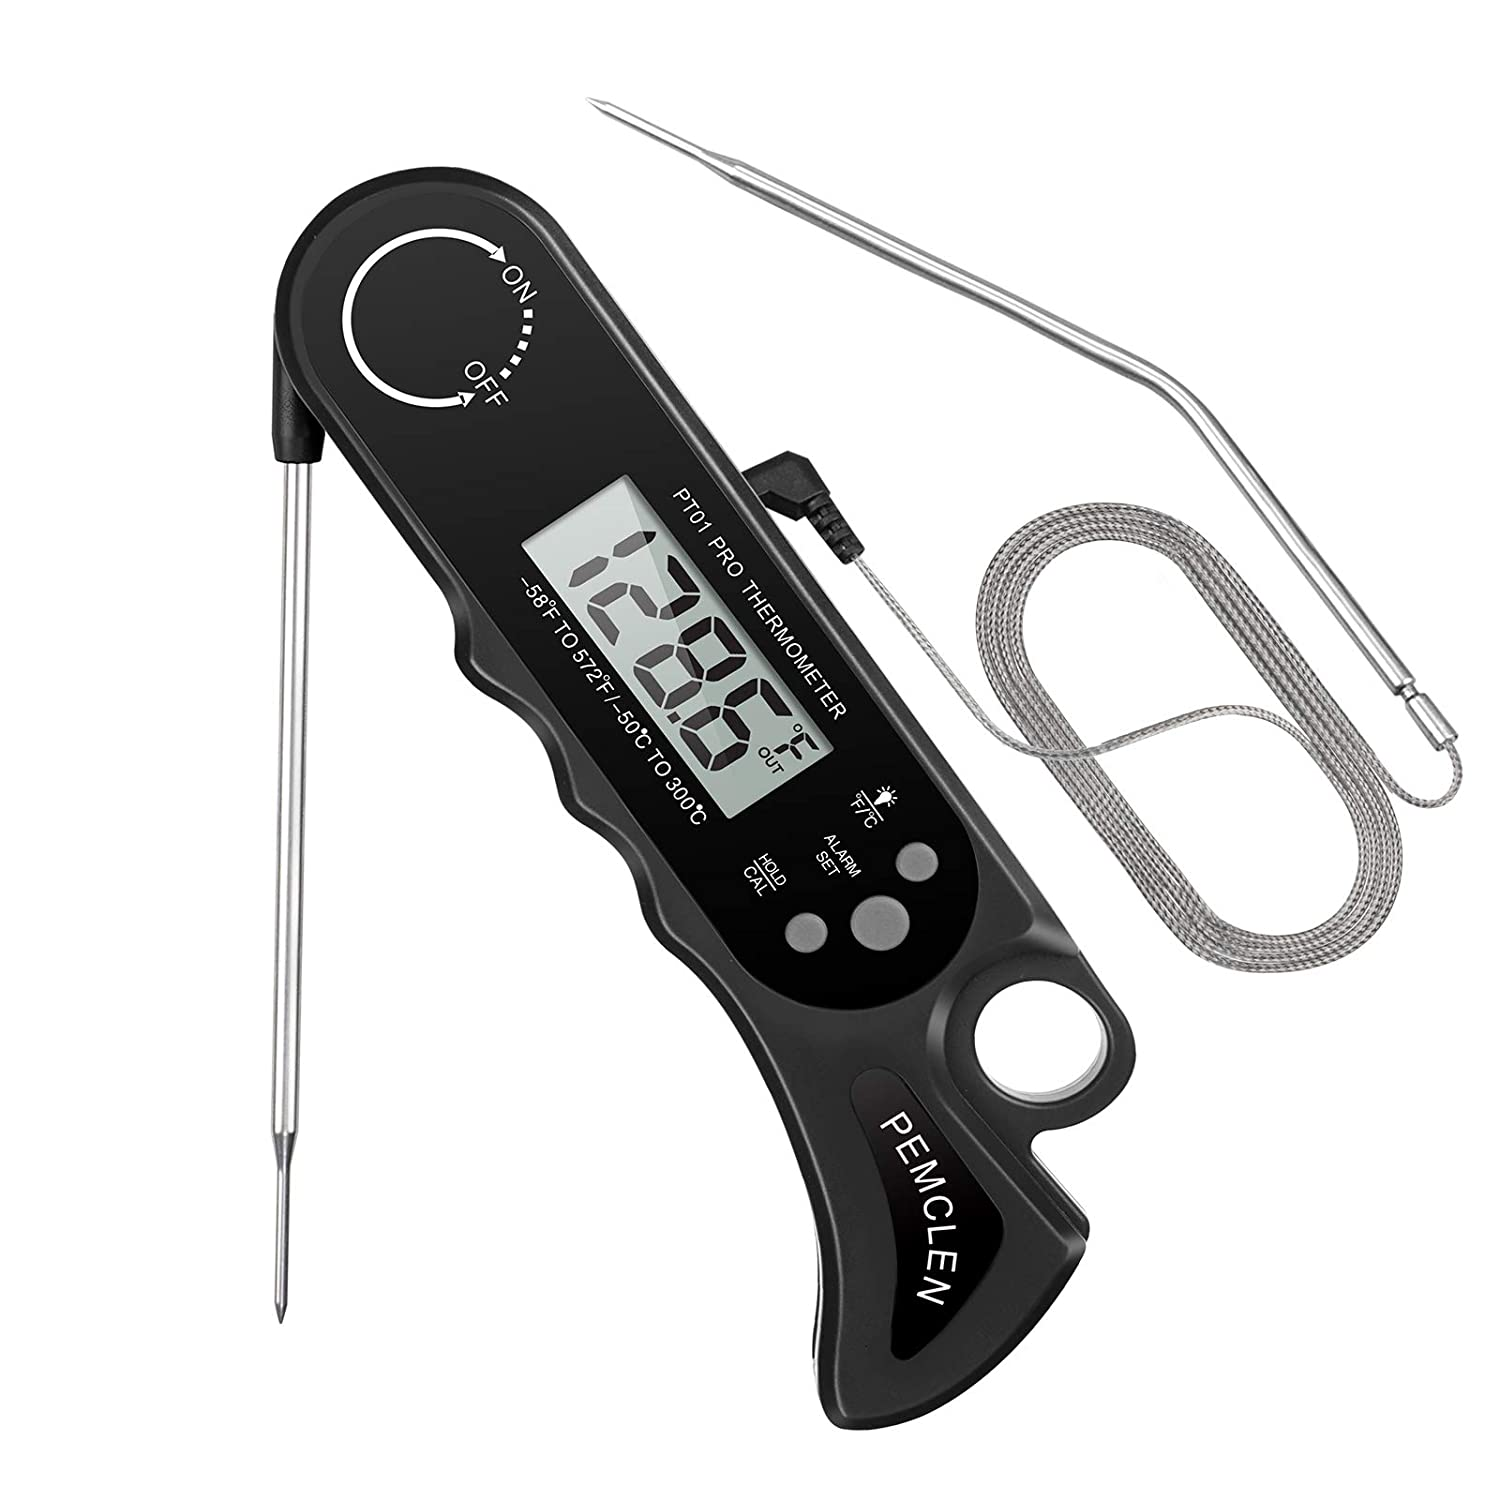 Meat Thermometer, PEMCLEN Digital Instant Read Food Thermometers Oven Safe Meat Thermometer with Dual Probe, Backlight, Alarm for Grill Cooking Kitchen Smoker BBQ Food Candy (PT01 Black)